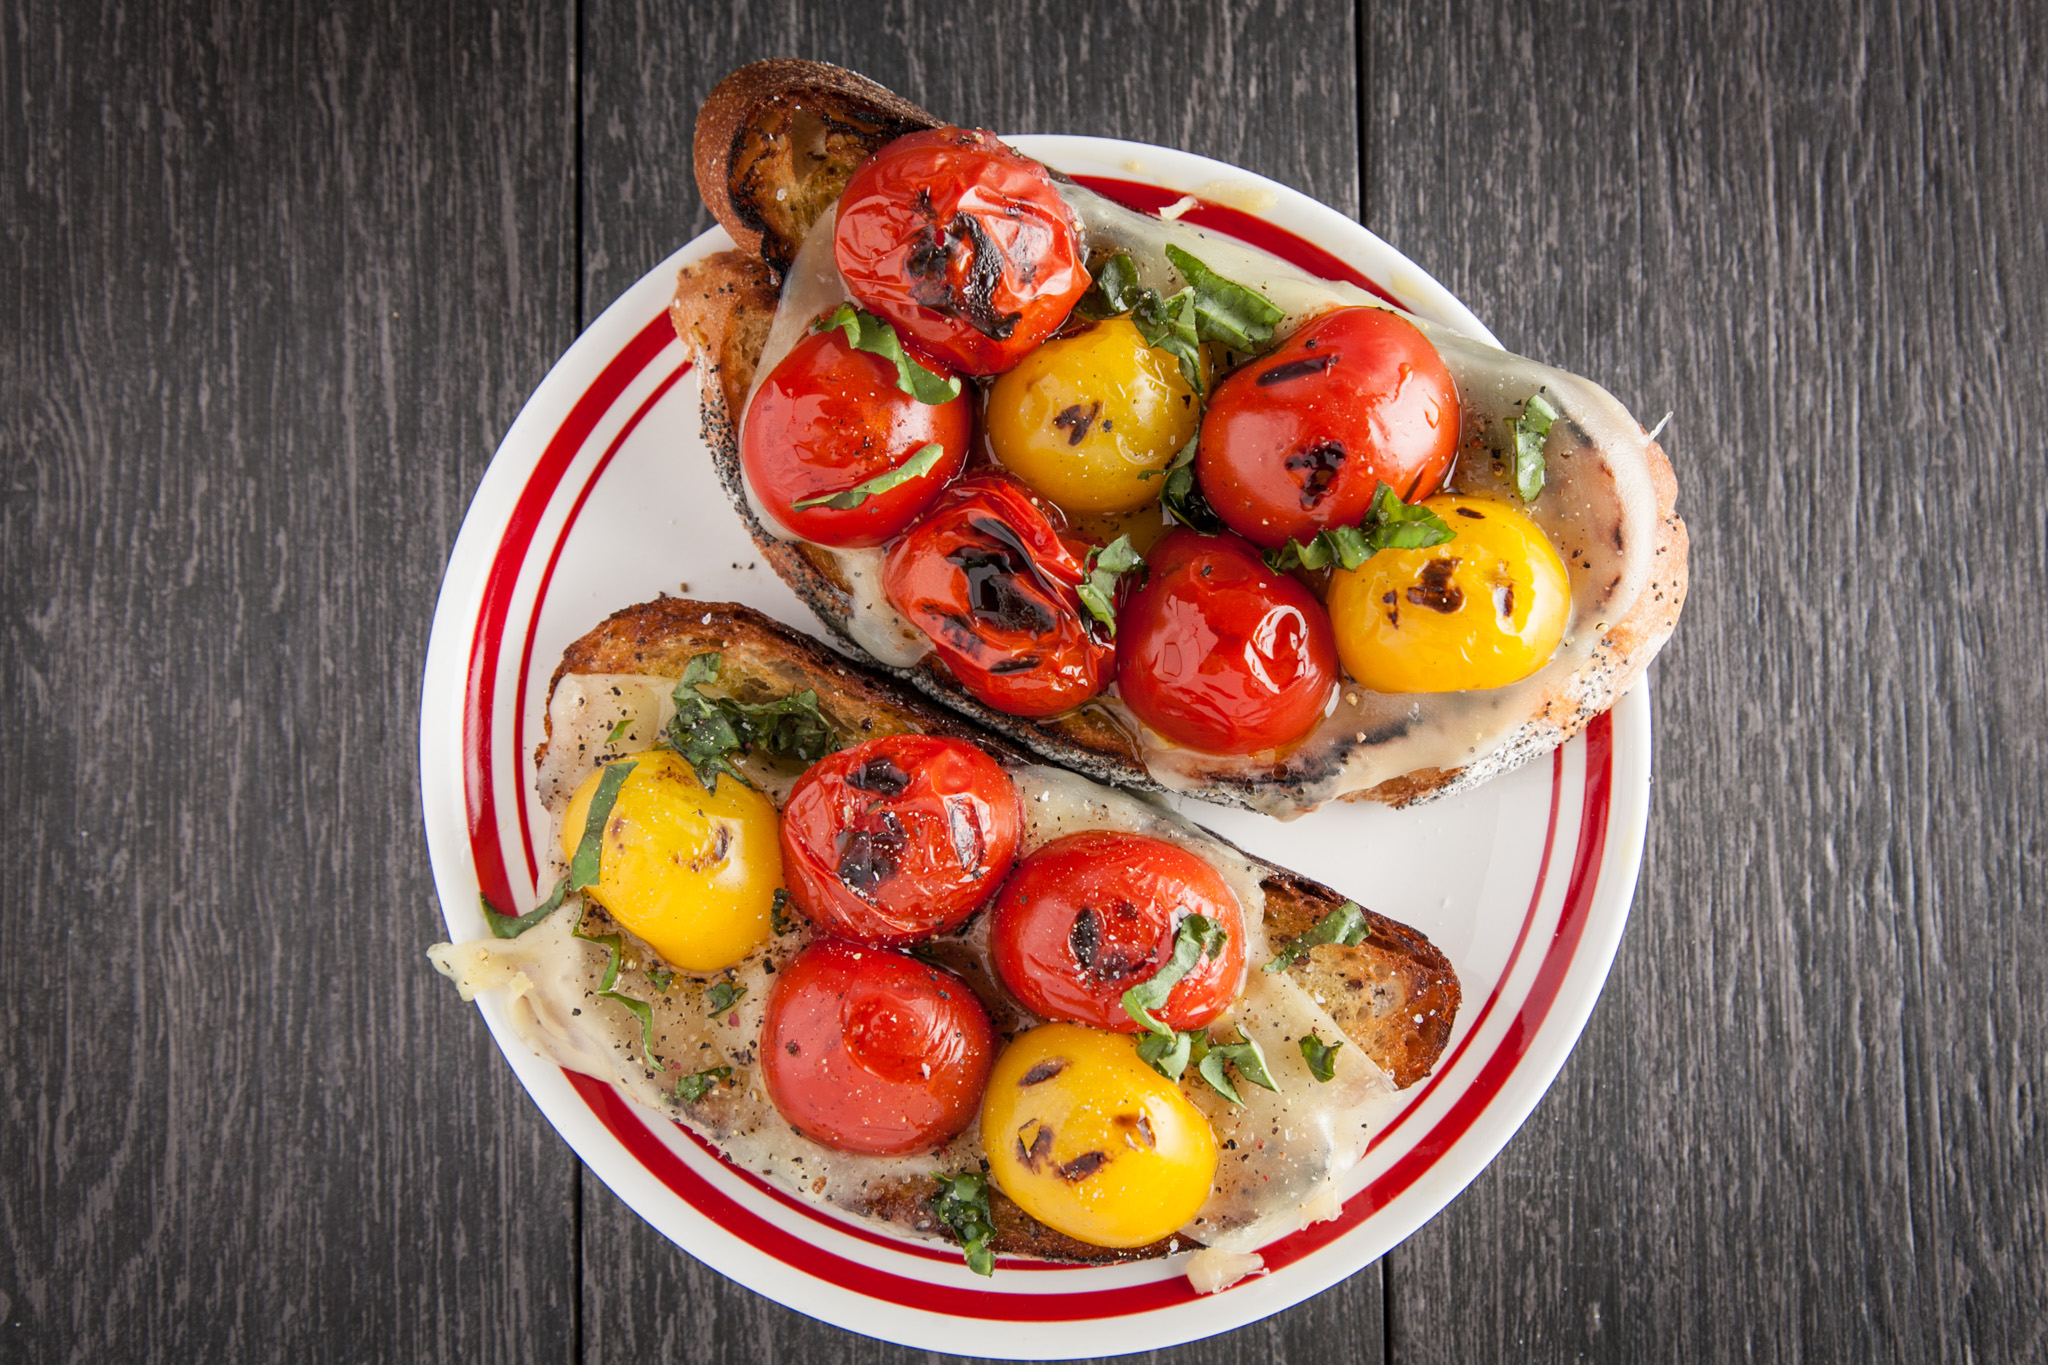 Roasted cherry tomatoes on grilled french bread, with a dab of spicy hot oil and a few shavings of basil